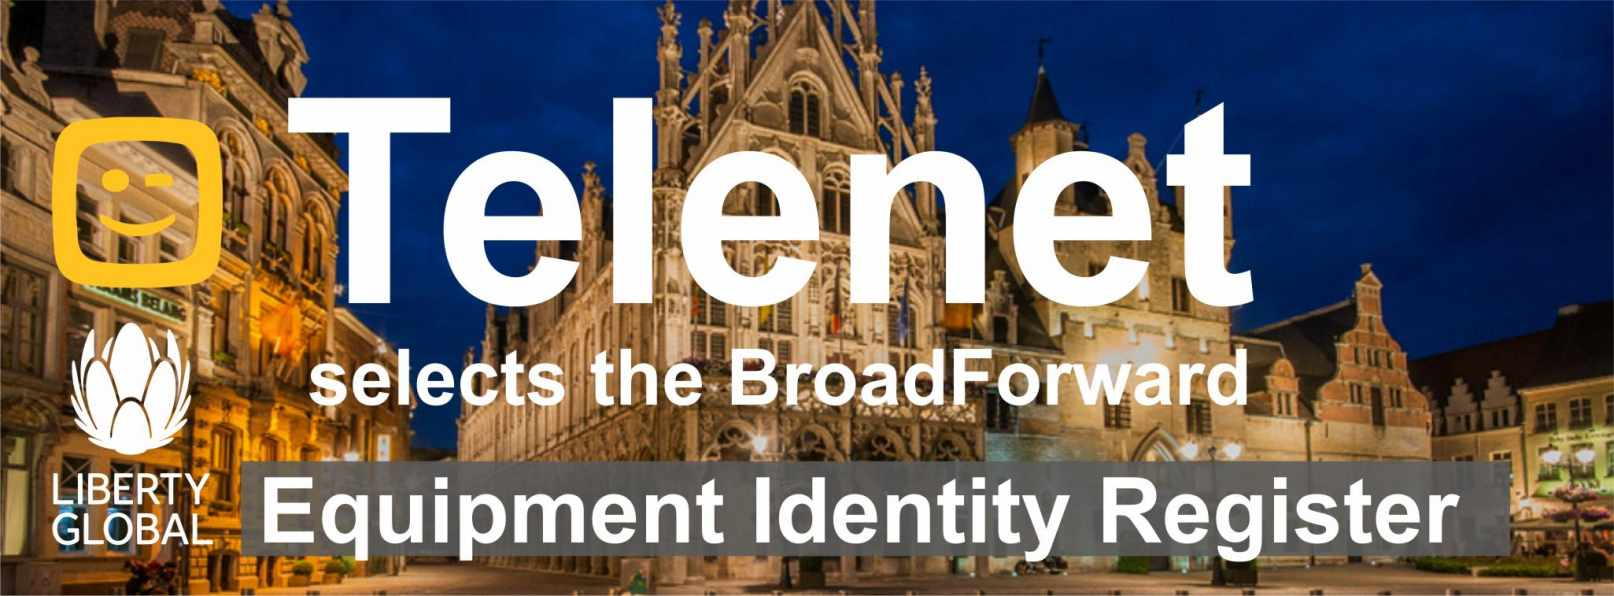 Telenet selects BroadForward EIR